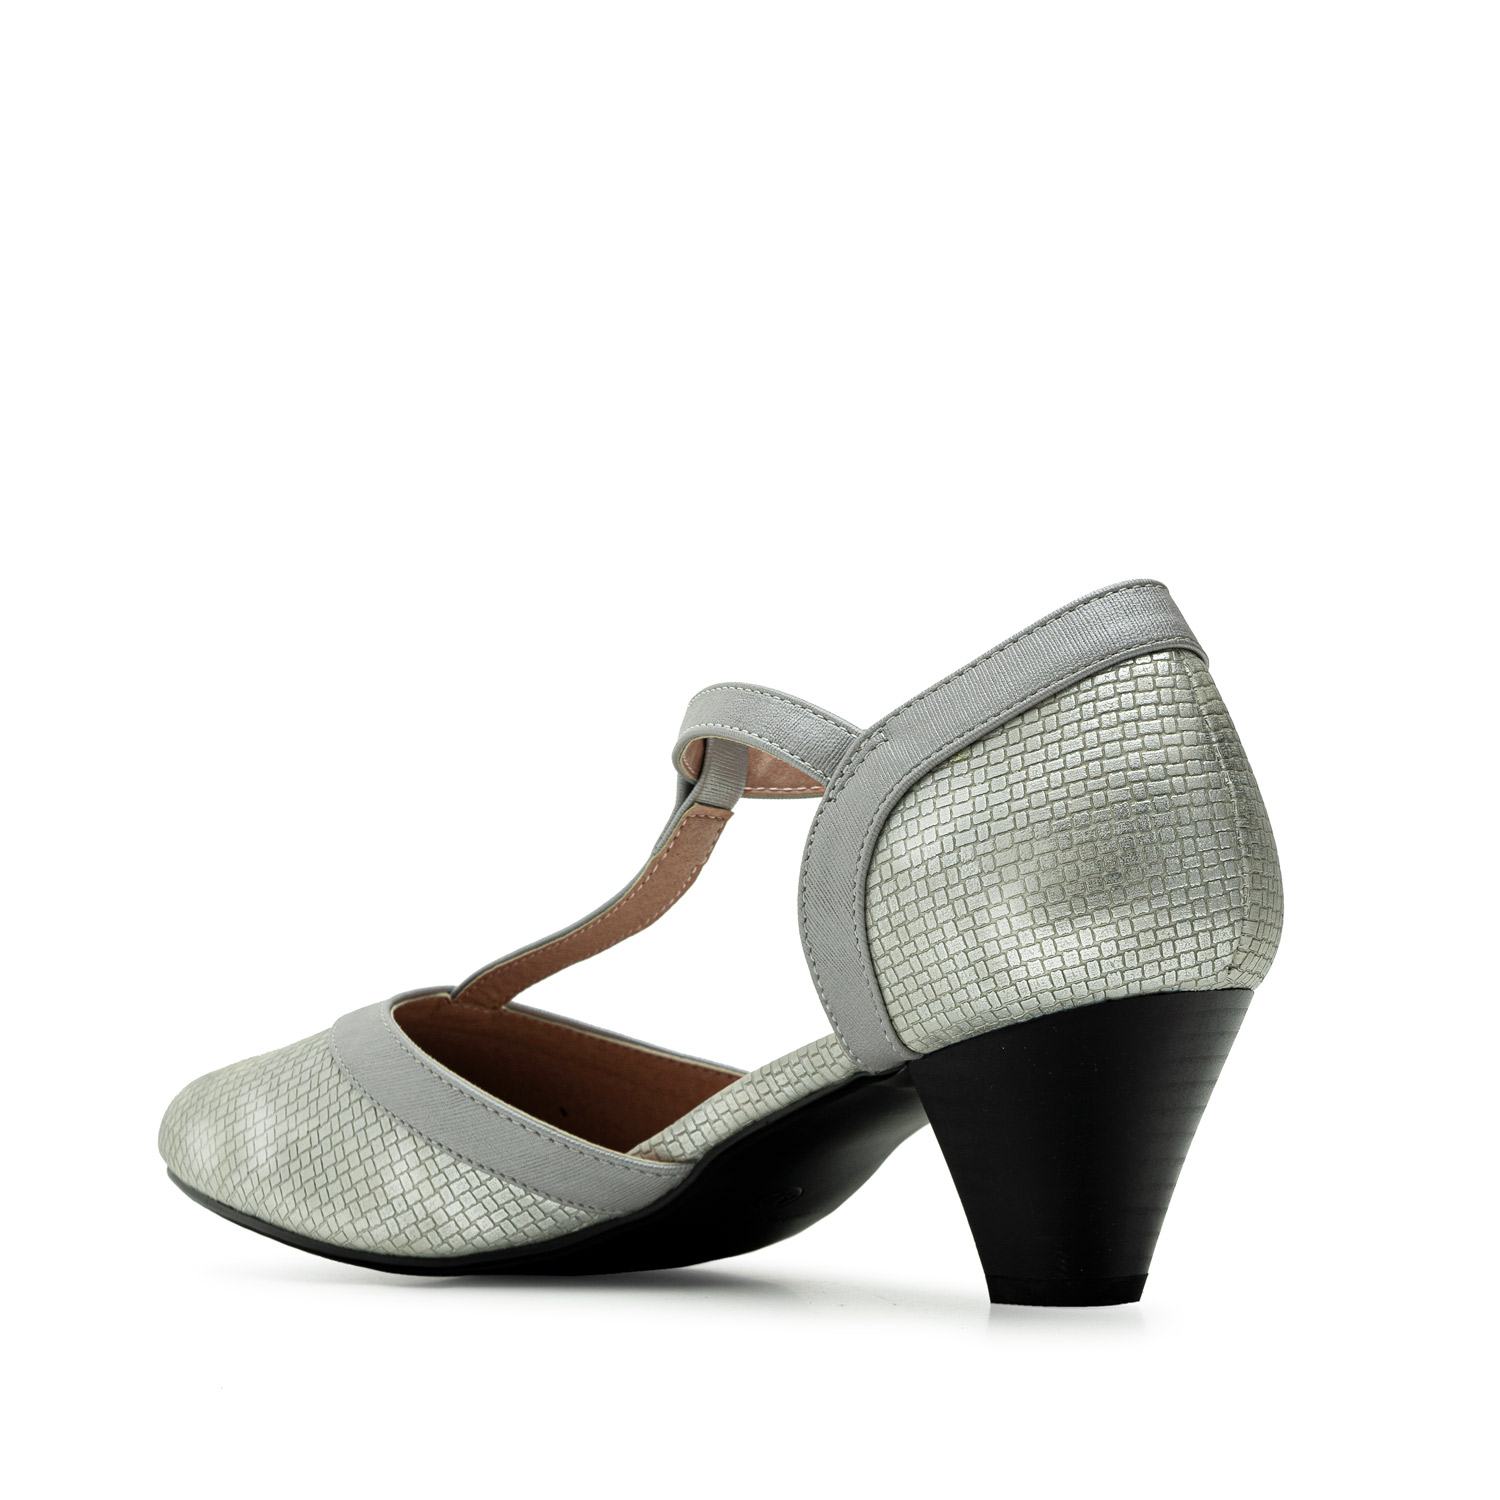 Charleston Sandals in engraved Silver